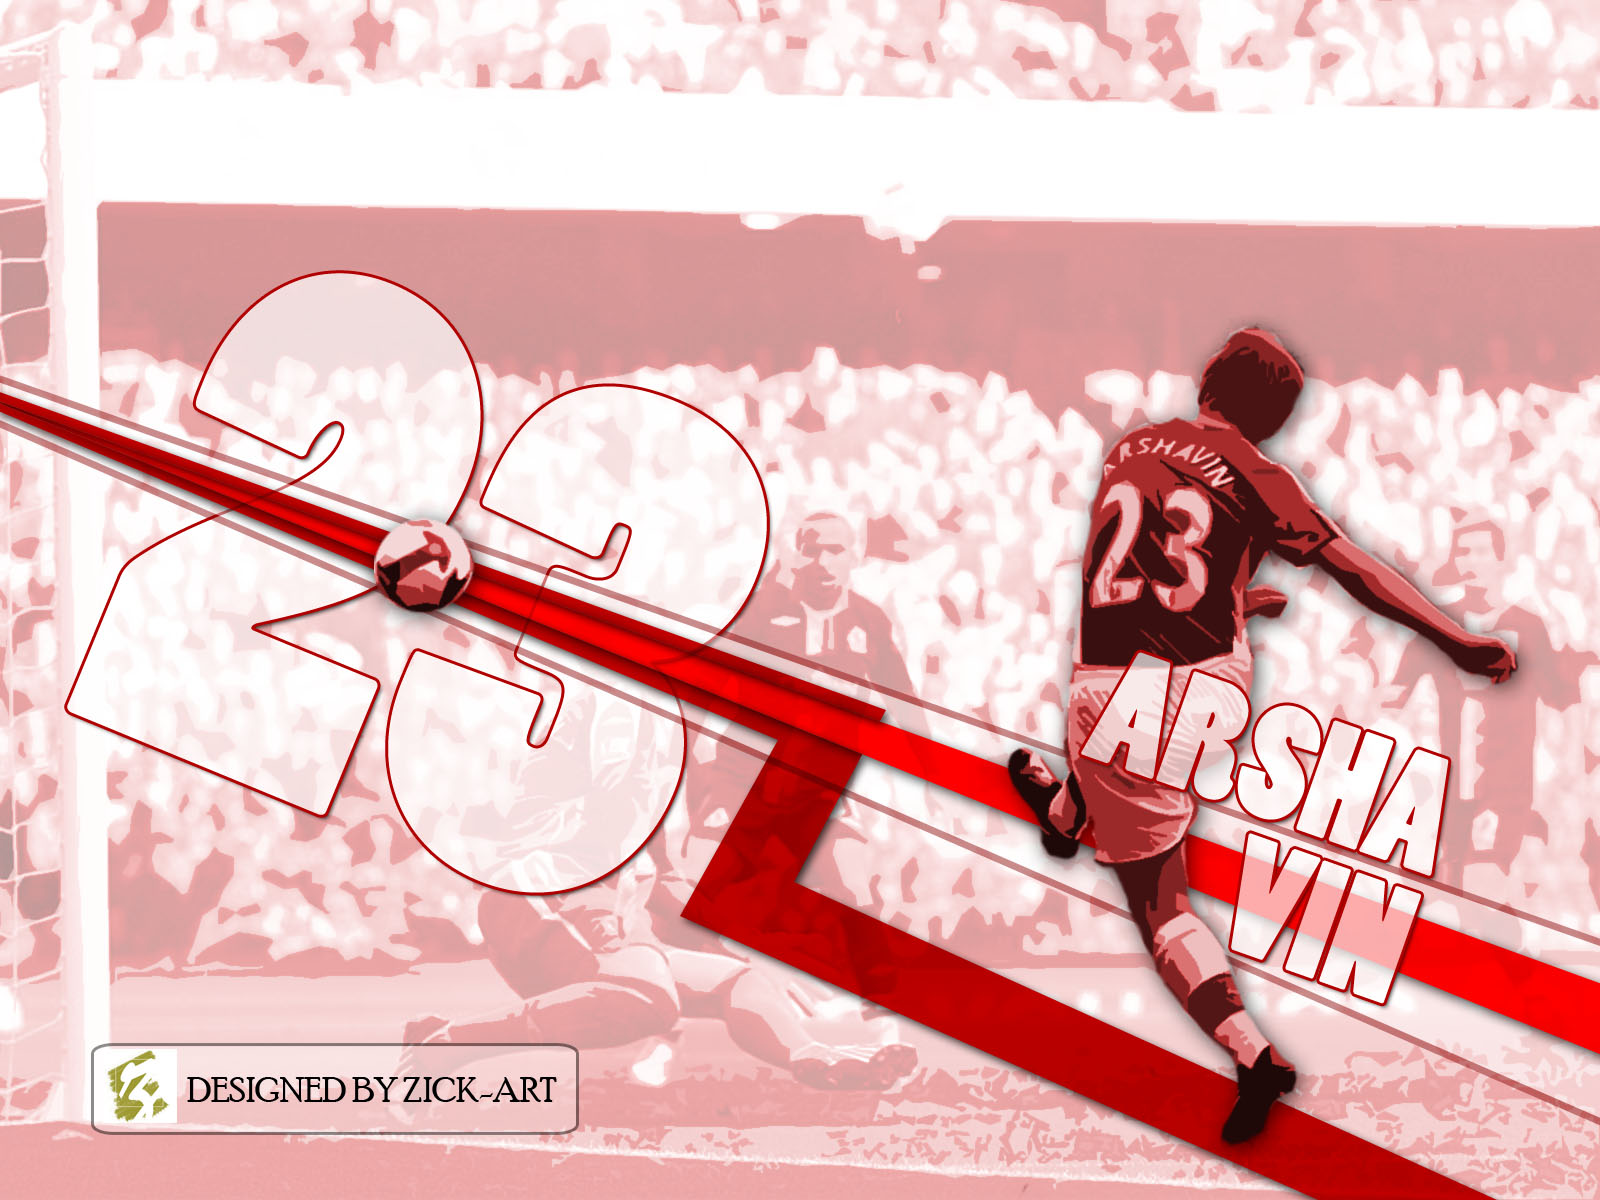 Arshavin Arsenal Wallpaper